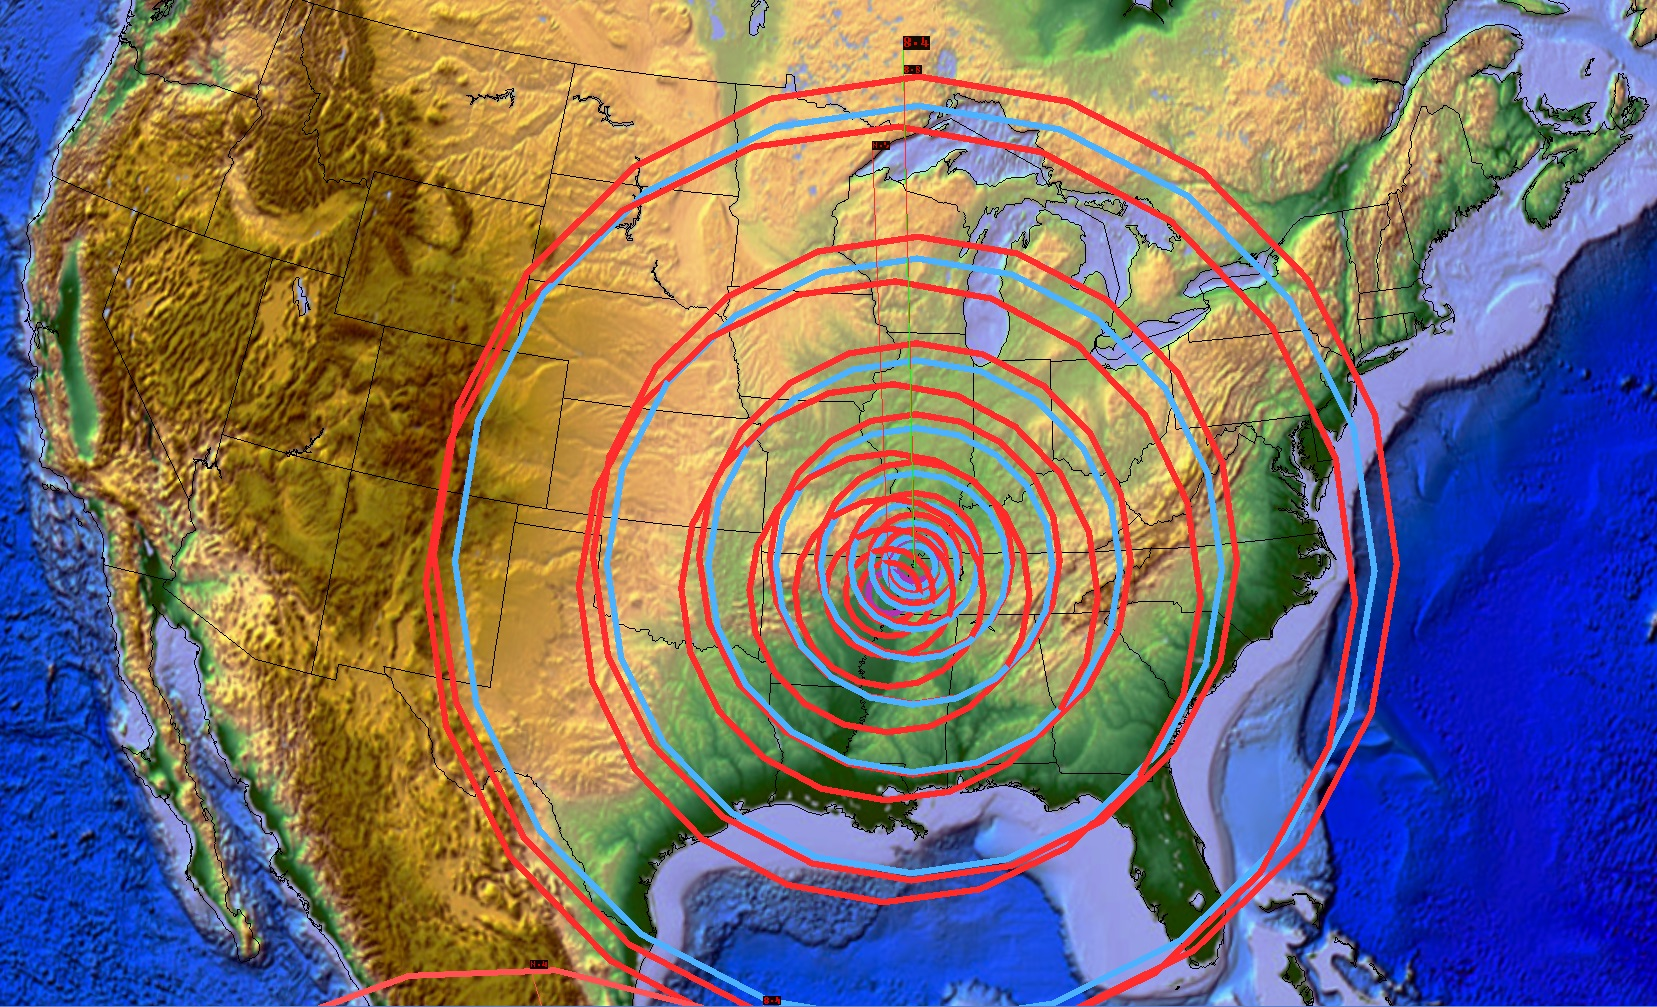 New madrid fault line predictions 2015 - Other Predictive Maps And Geology Pictures I Found On The Internet